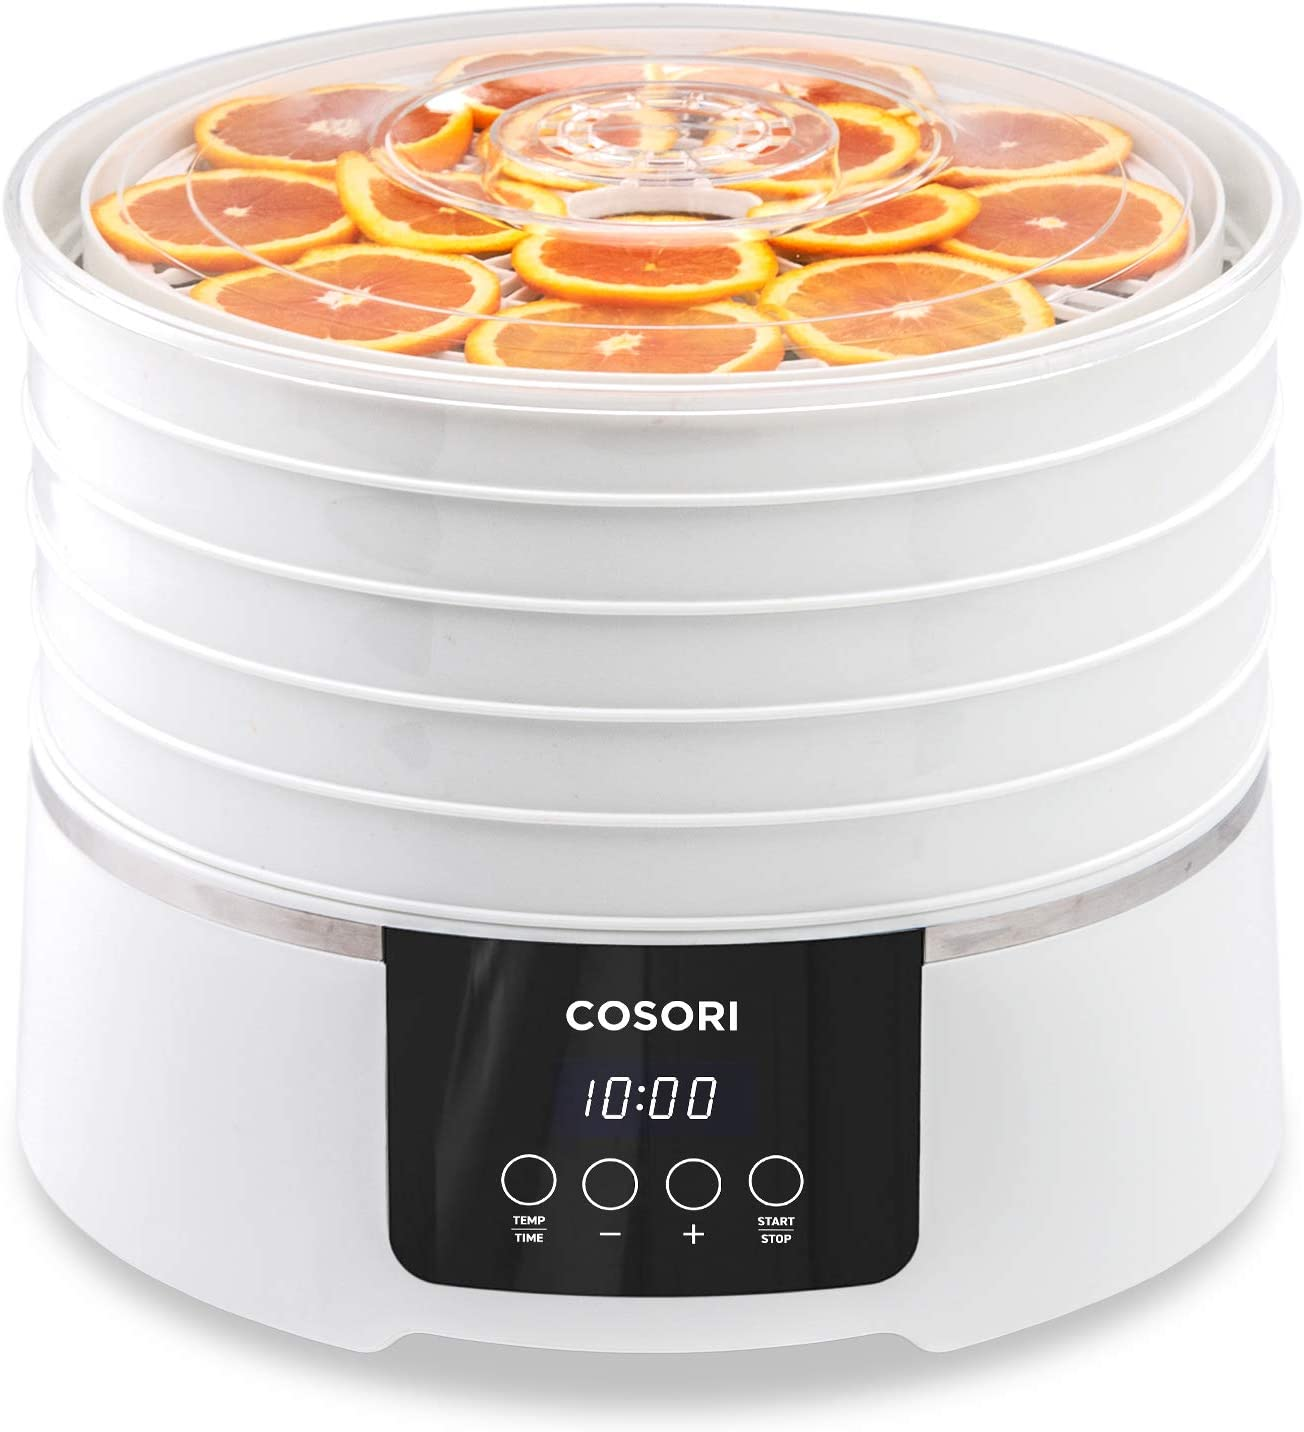 COSORI Food Dehydrator Machine 50 Recipes with Digital Timer and Temperature Control, 5 BPA-Free Trays Food Dryer for Beef Jerky,Fruit,Dog Treats,Herbs,2-Year Warranty,ETL Listed FDA Compliant